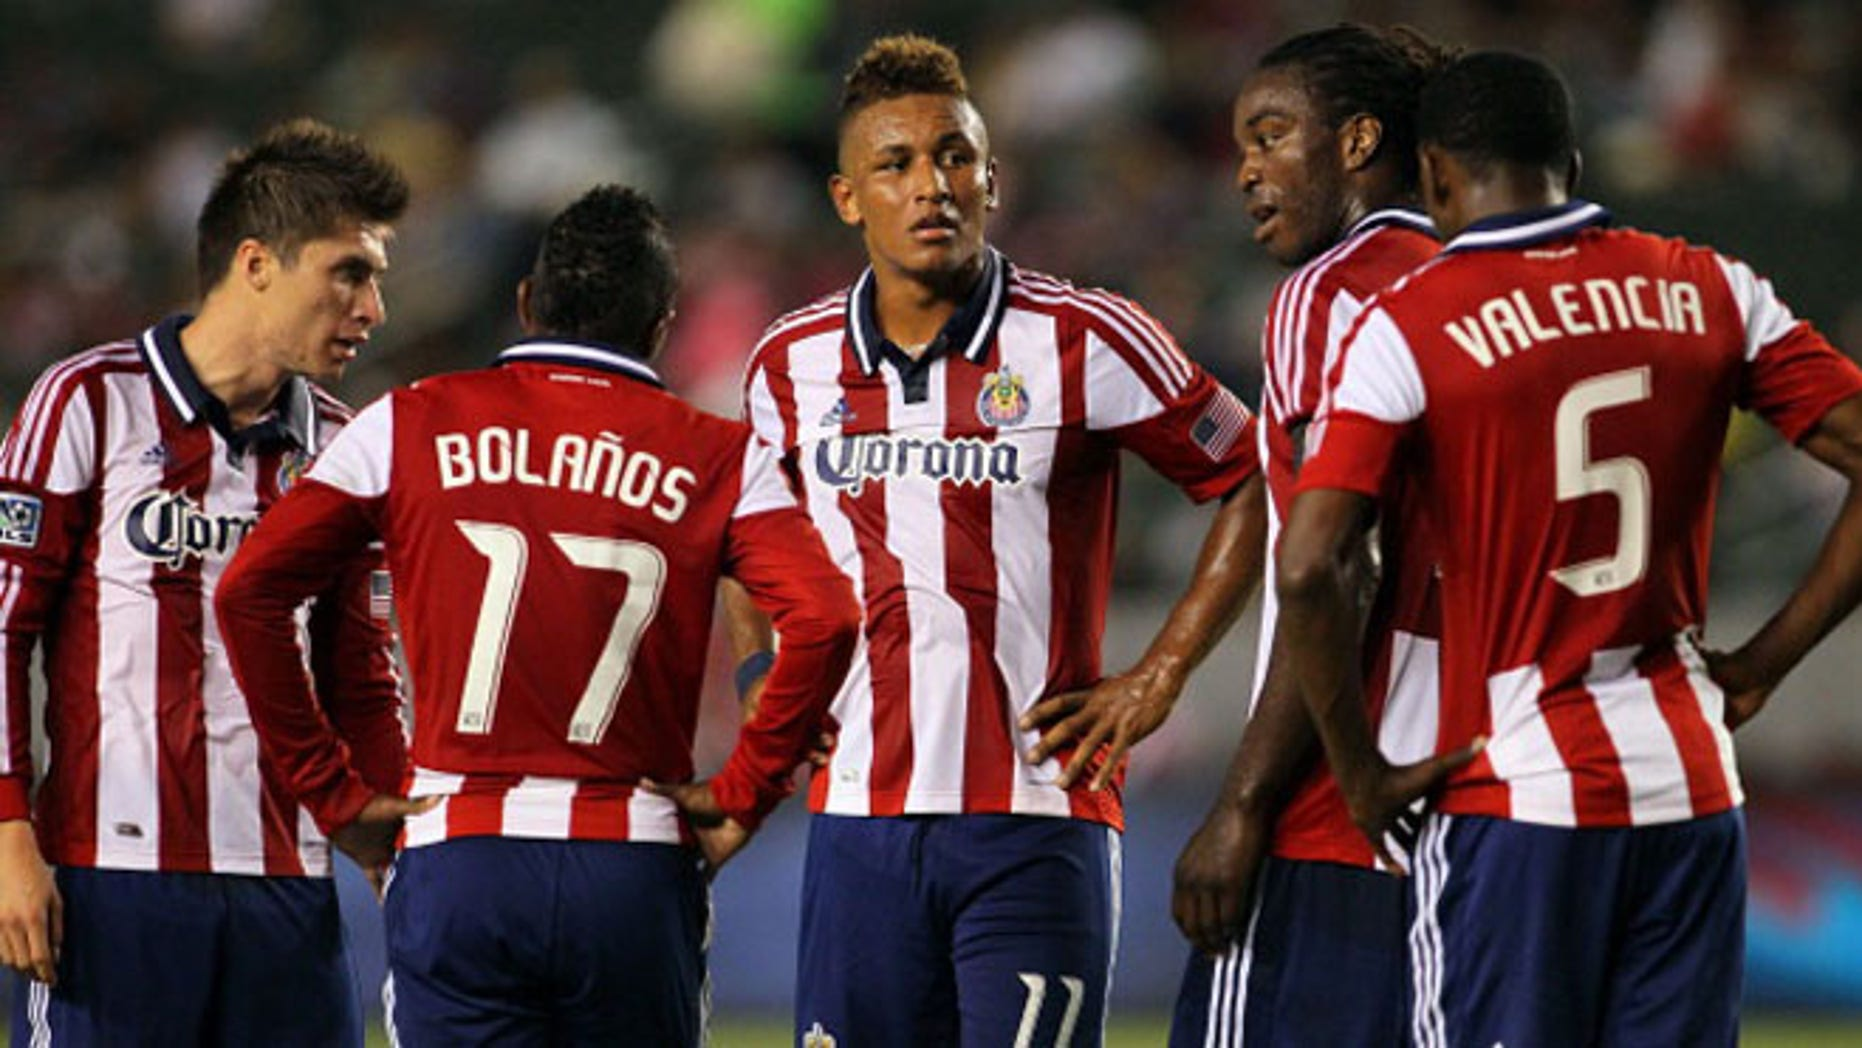 CARSON, CA - SEPTEMBER 15:  Juan Agudelo #11 of Chivas USA and his teammates look on prior to a penalty kick being awarded to the San Jose Earthquakes  during the MLS match at The Home Depot Center on September 15, 2012 in Carson, California. The Earthquakes defeated Chivas USA 2-0.  (Photo by Victor Decolongon/Getty Images)